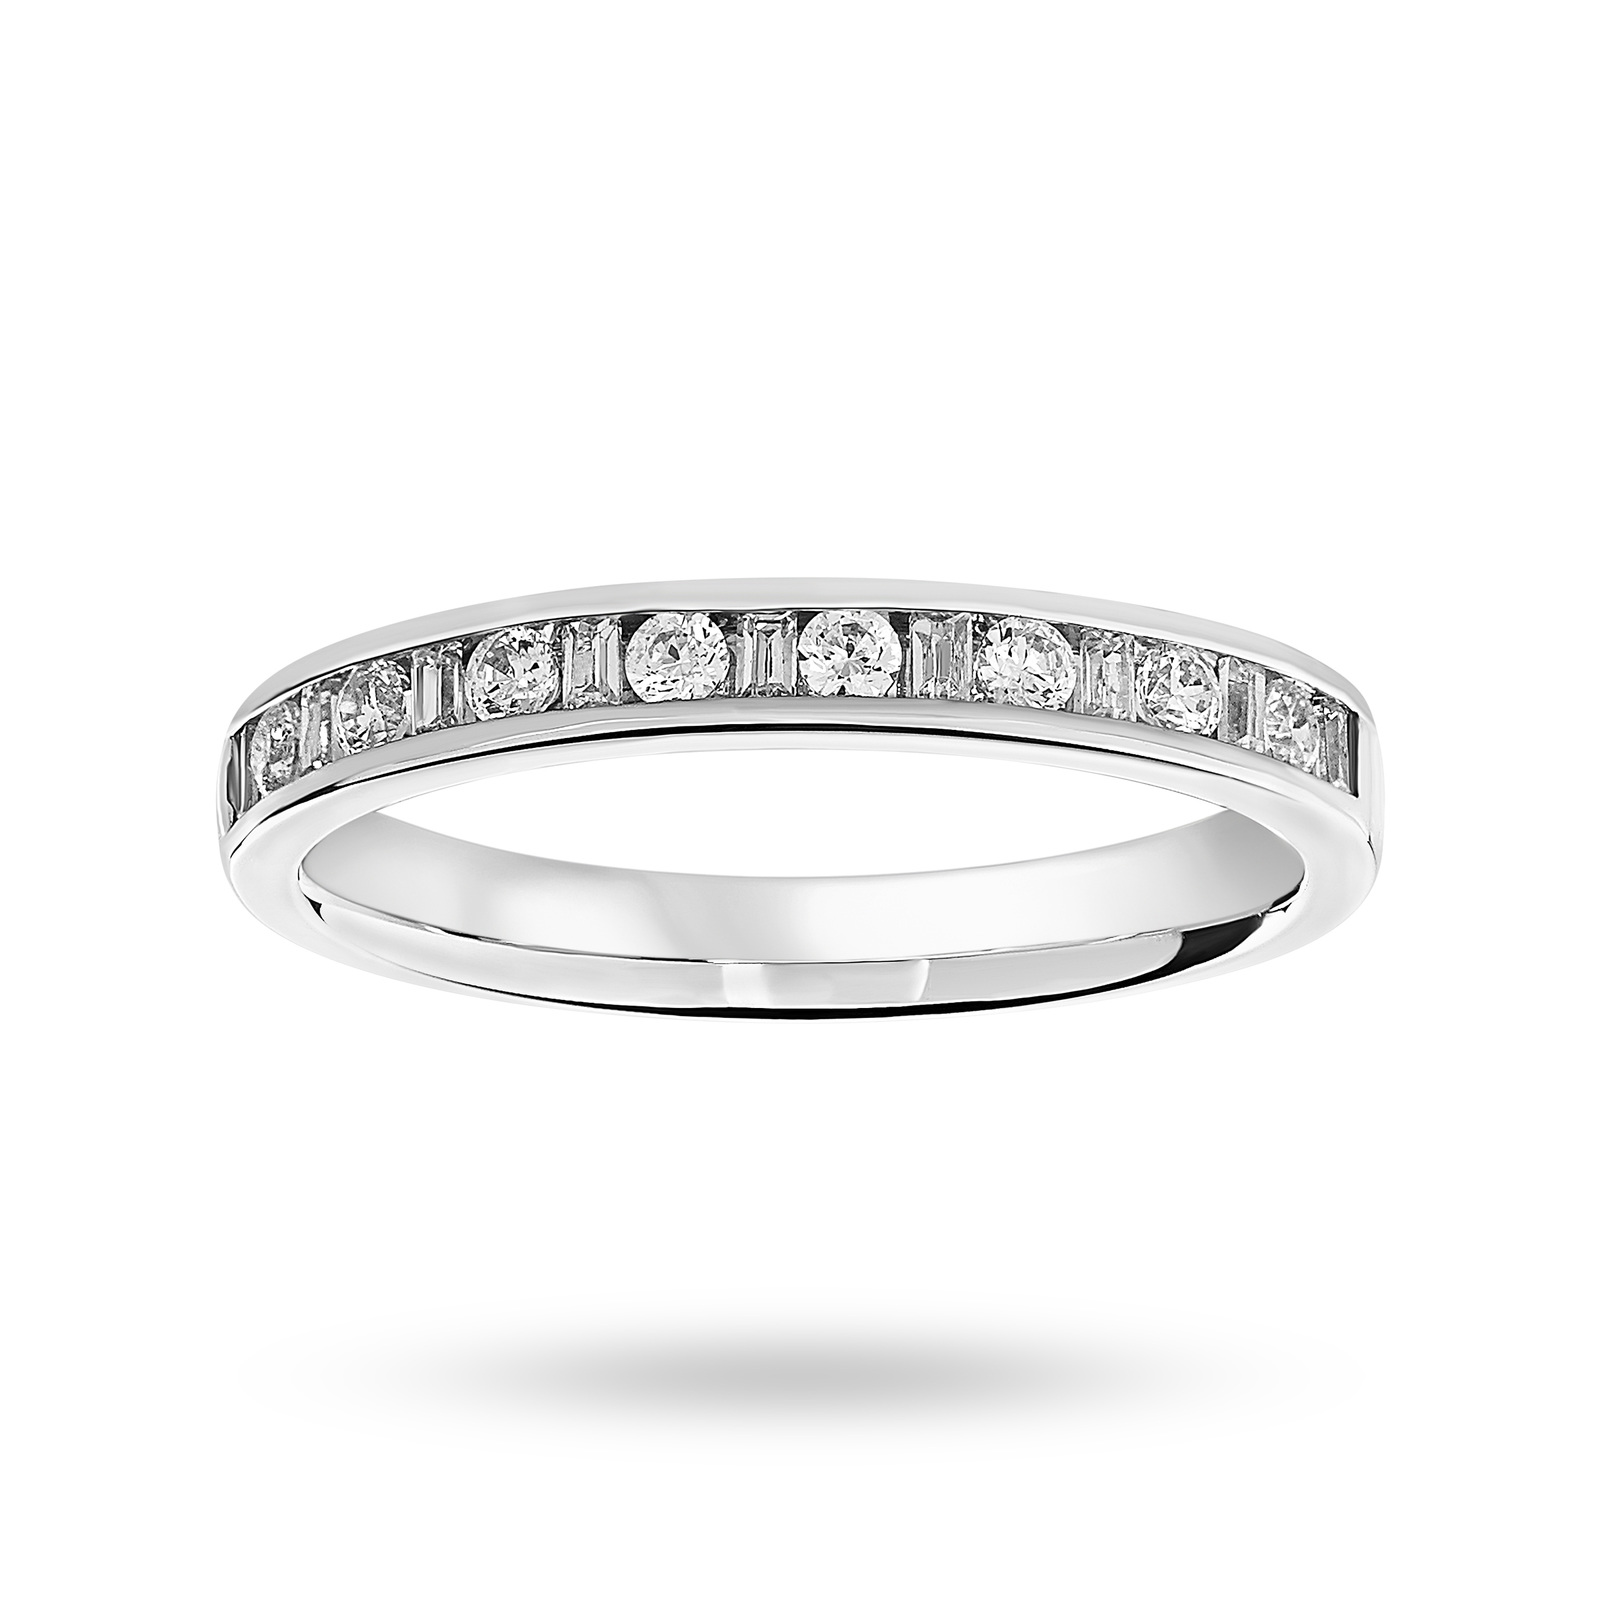 trellis engagement dp band amazon diamond eternity ring com gold bands white wedding jewelry